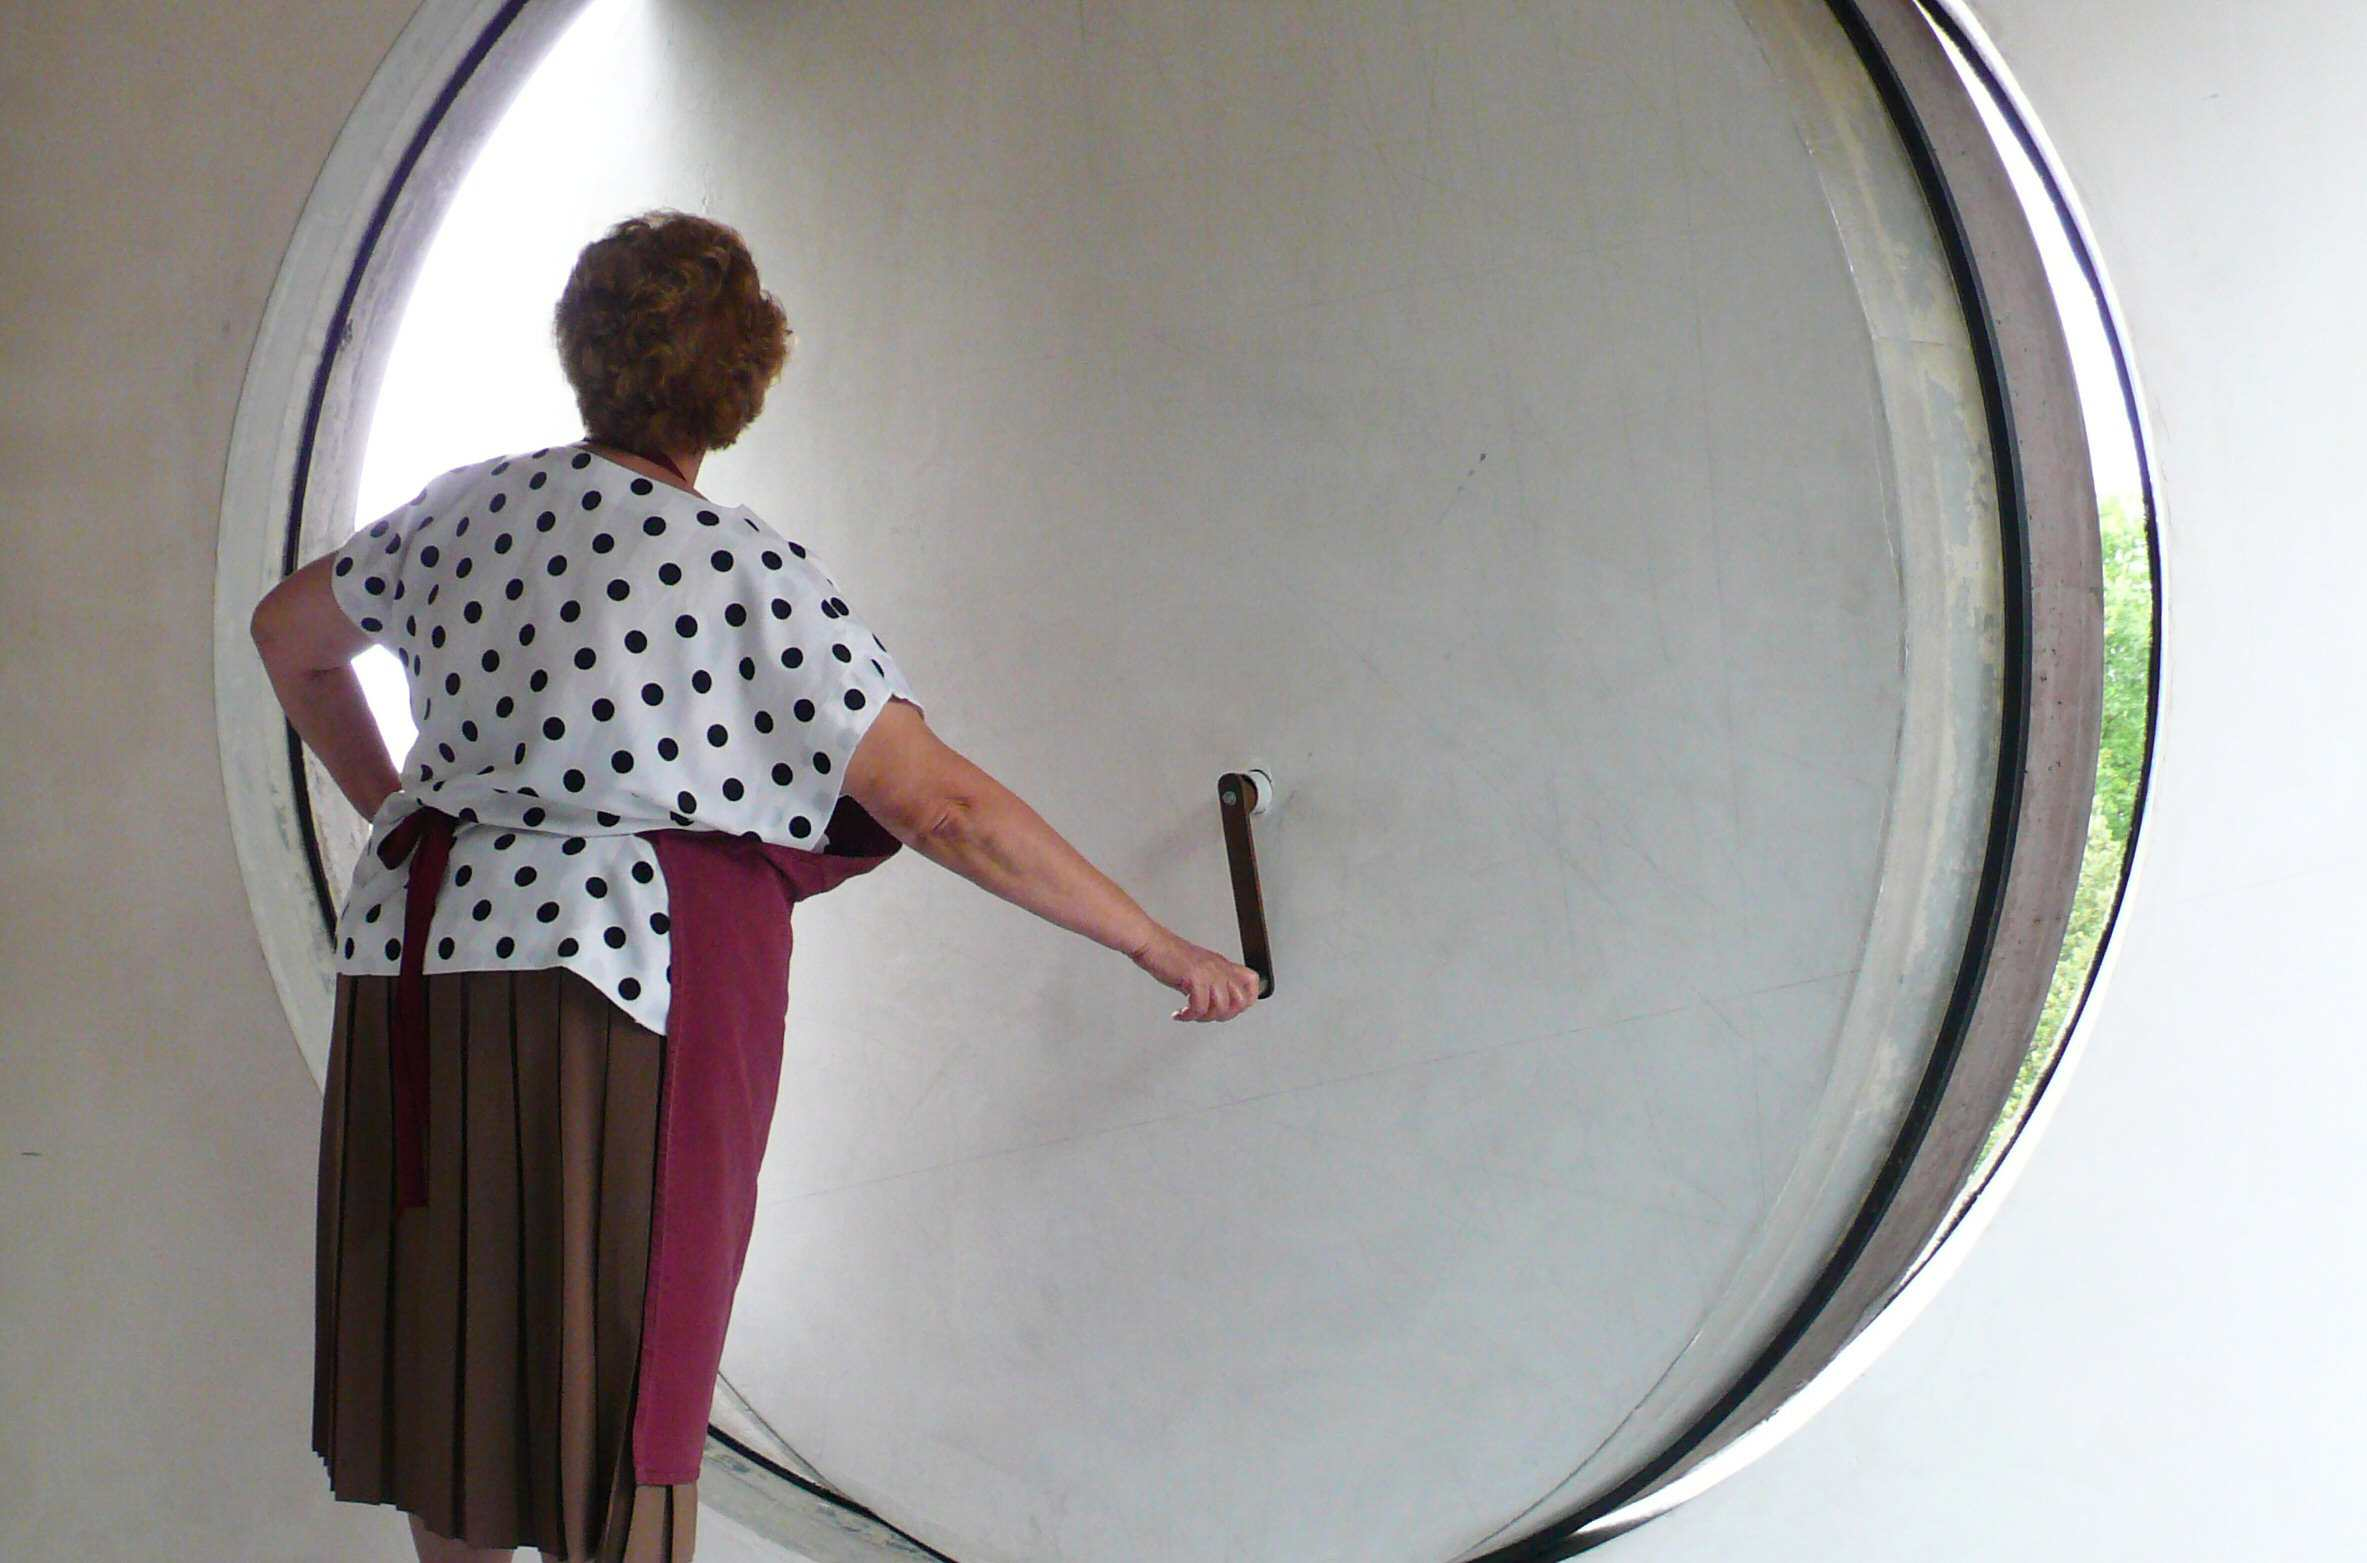 The Housekeeper turns a handle to open a portal window at Maison a Bordeaux designed by Rem Koolhaas